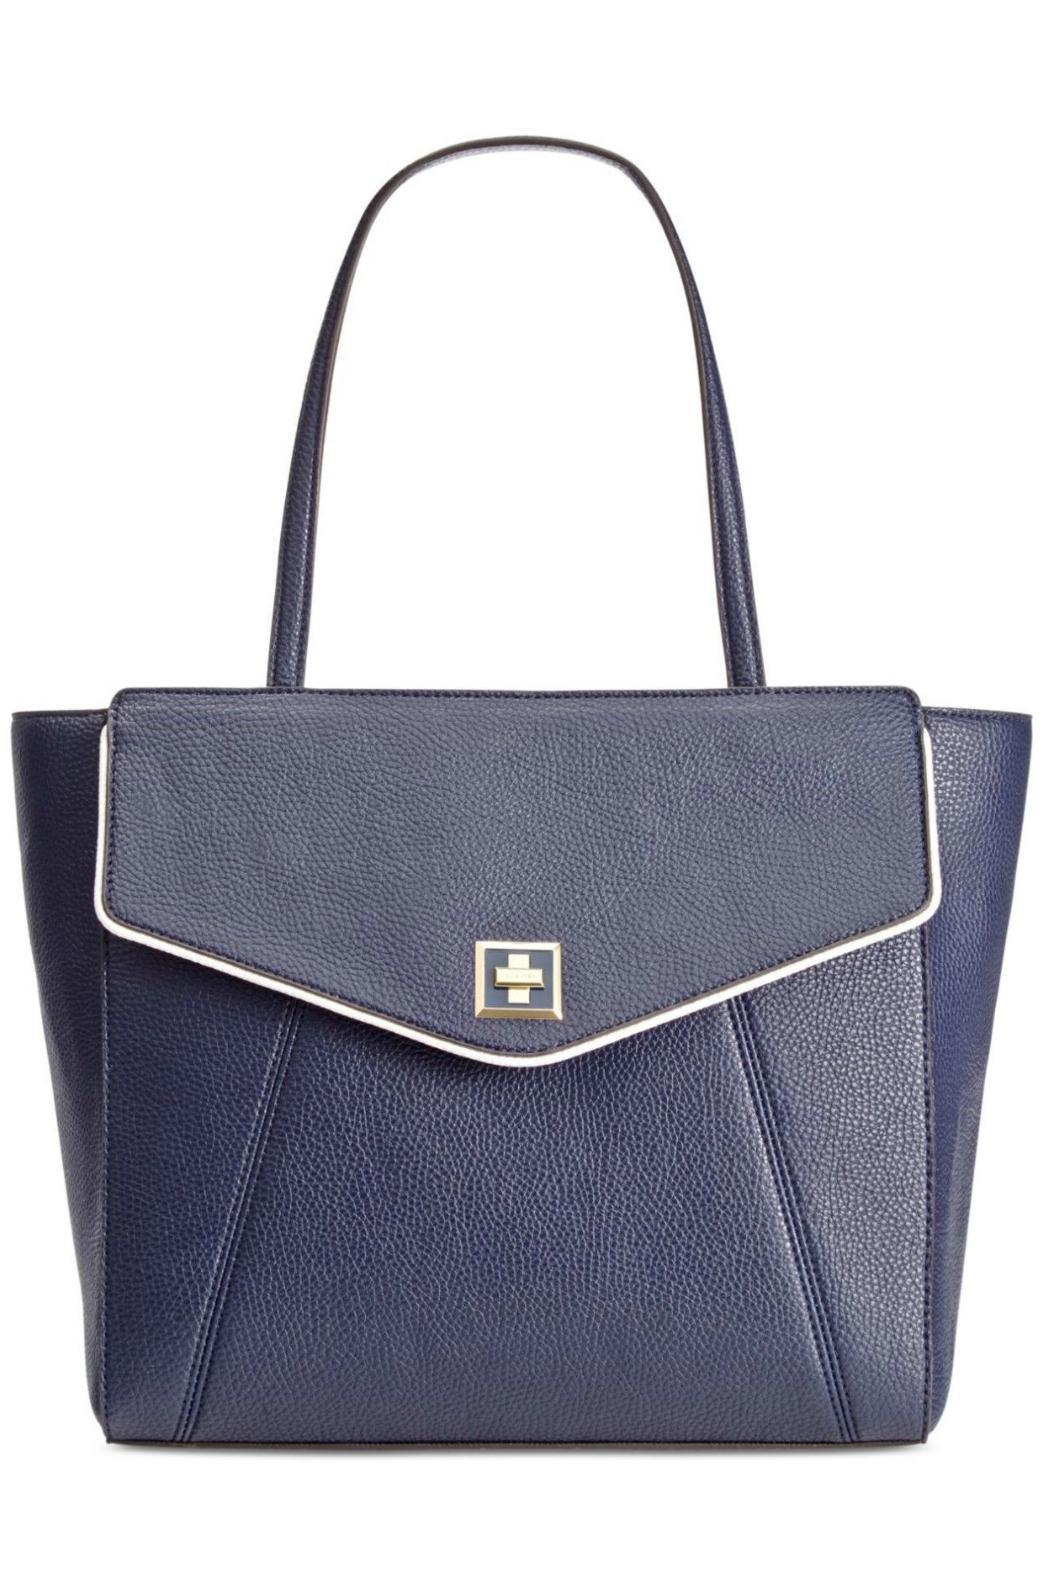 Anne Klein Navy Timeless Choice Bag - Main Image